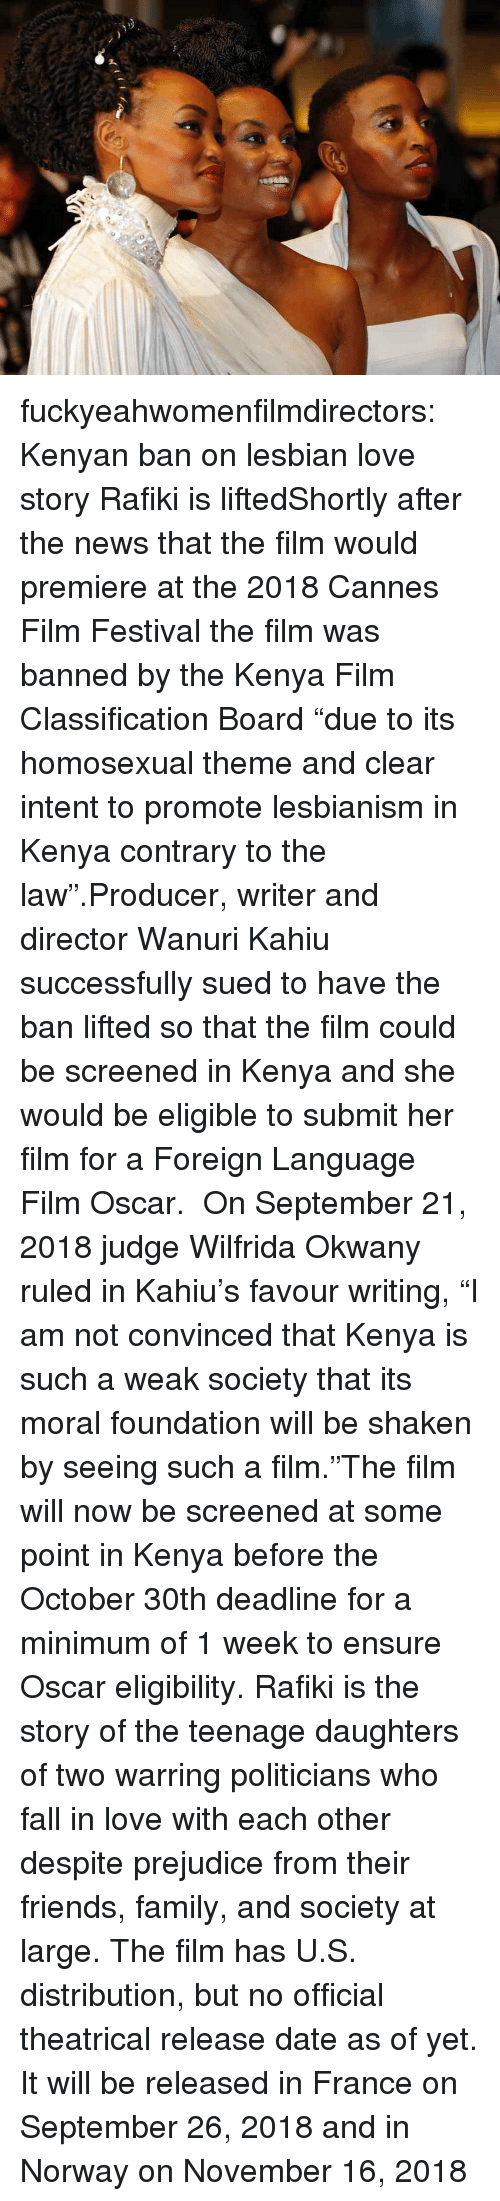 """contrary: fuckyeahwomenfilmdirectors:  Kenyan ban on lesbian love story Rafiki is liftedShortly after the news that the film would premiere at the2018 Cannes Film Festival the film was banned by the Kenya Film Classification Board """"due to its homosexual theme and clear intent to promote lesbianism in Kenya contrary to the law"""".Producer, writer and directorWanuri Kahiu successfully sued to have the ban lifted so that the film could be screened in Kenya and she would be eligible to submit her film for a Foreign Language Film Oscar. On September 21, 2018 judge Wilfrida Okwany ruled in Kahiu's favour writing, """"I am not convinced that Kenya is such a weak society that its moral foundation will be shaken by seeing such a film.""""The film will now be screened at some point in Kenya before the October 30th deadline for a minimum of 1 week to ensure Oscar eligibility.Rafiki is the story of the teenage daughters of two warring politicians who fall in love with each other despite prejudice from their friends, family, and society at large. The film has U.S. distribution, but no official theatrical release date as of yet. It will be released in France on September 26, 2018 and in Norway on November 16, 2018"""